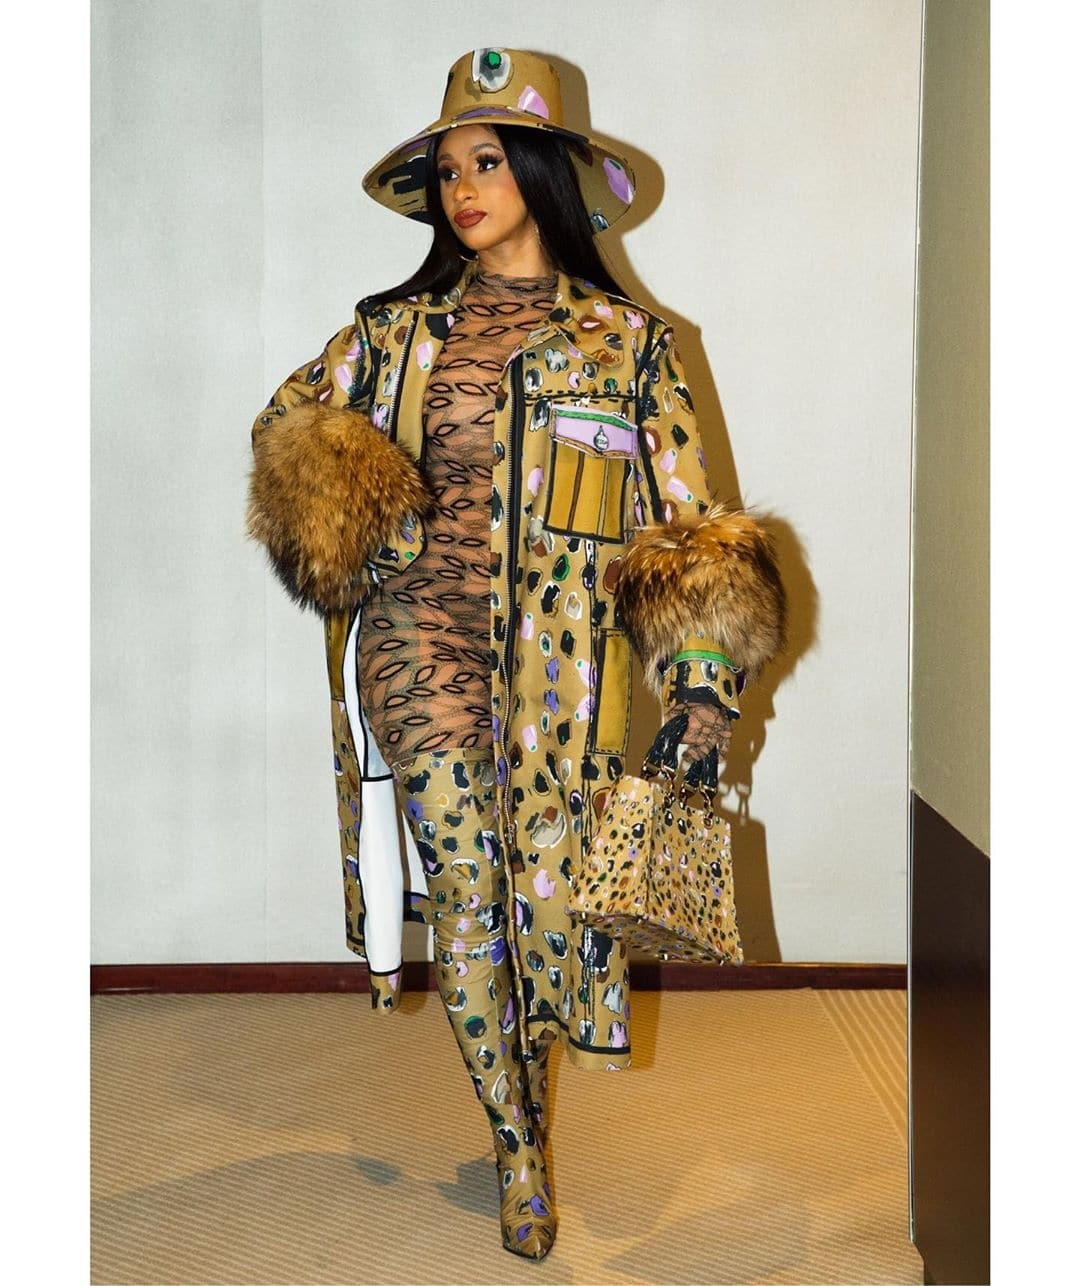 cardi-b-shut-down-the-streets-with-her-style-at-pfw-ss20